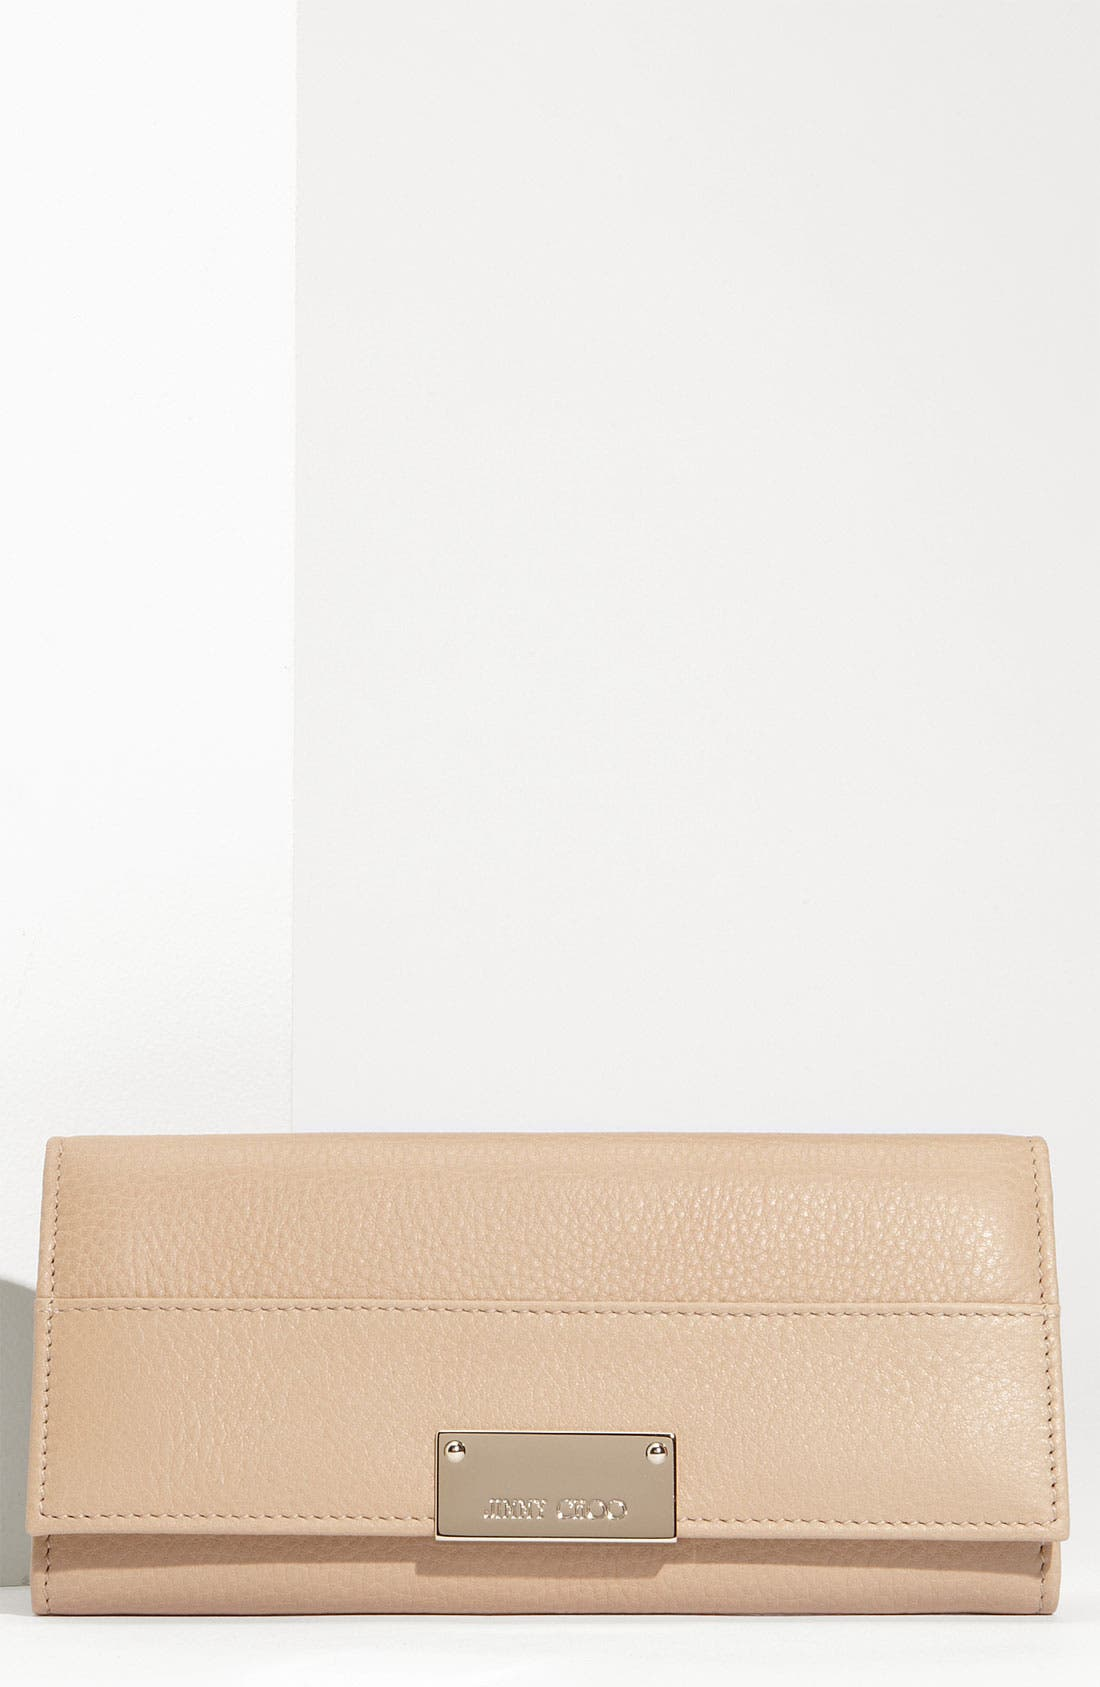 Alternate Image 1 Selected - Jimmy Choo 'Reza' Calfskin Leather Wallet